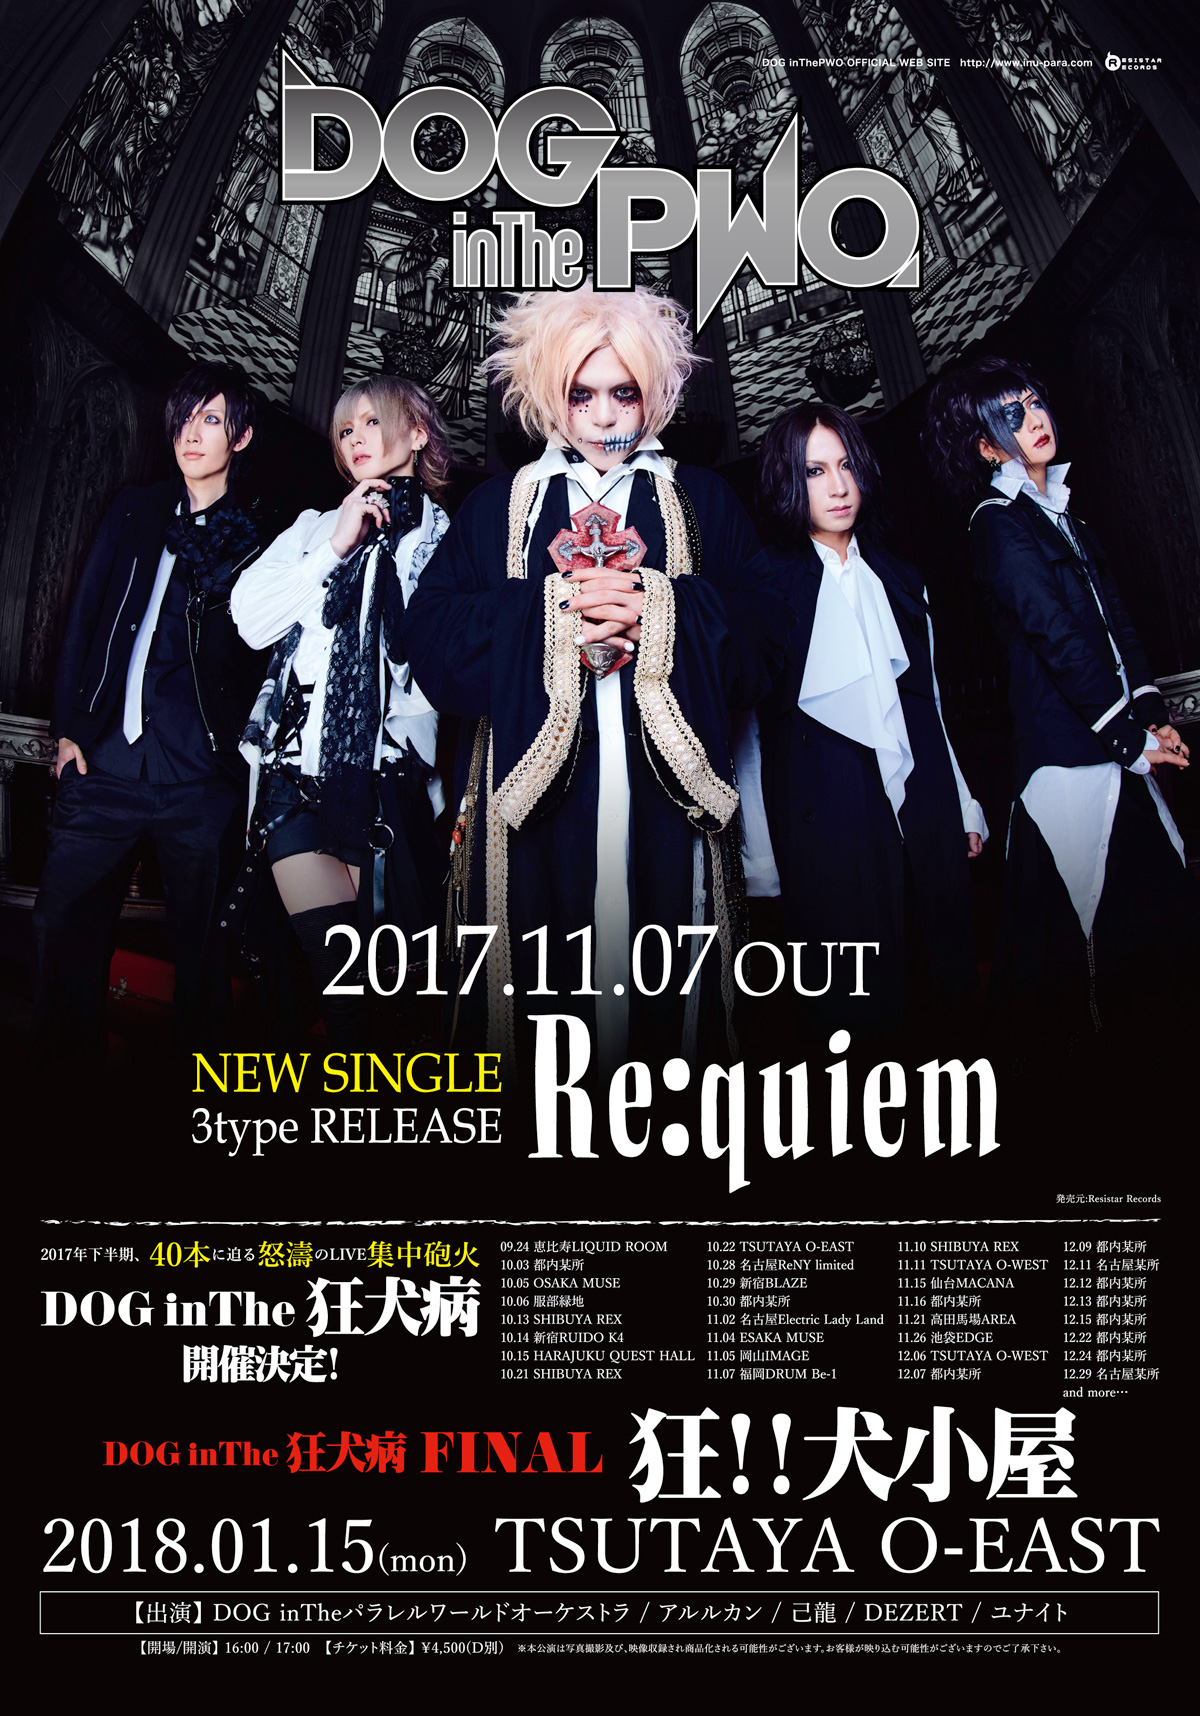 DOG inTheパラレルワールドオーケストラ 2017.11.07 OUT NEW SINGKE 3type RELEASE Re:quiem / DOG in the狂犬病 開催決定! DOG in the FINAL 狂!!犬小屋 2018.01.15(mon) TSUTAYA O-EAST | ヴィジュアル系ポータルサイト「ViSULOG」